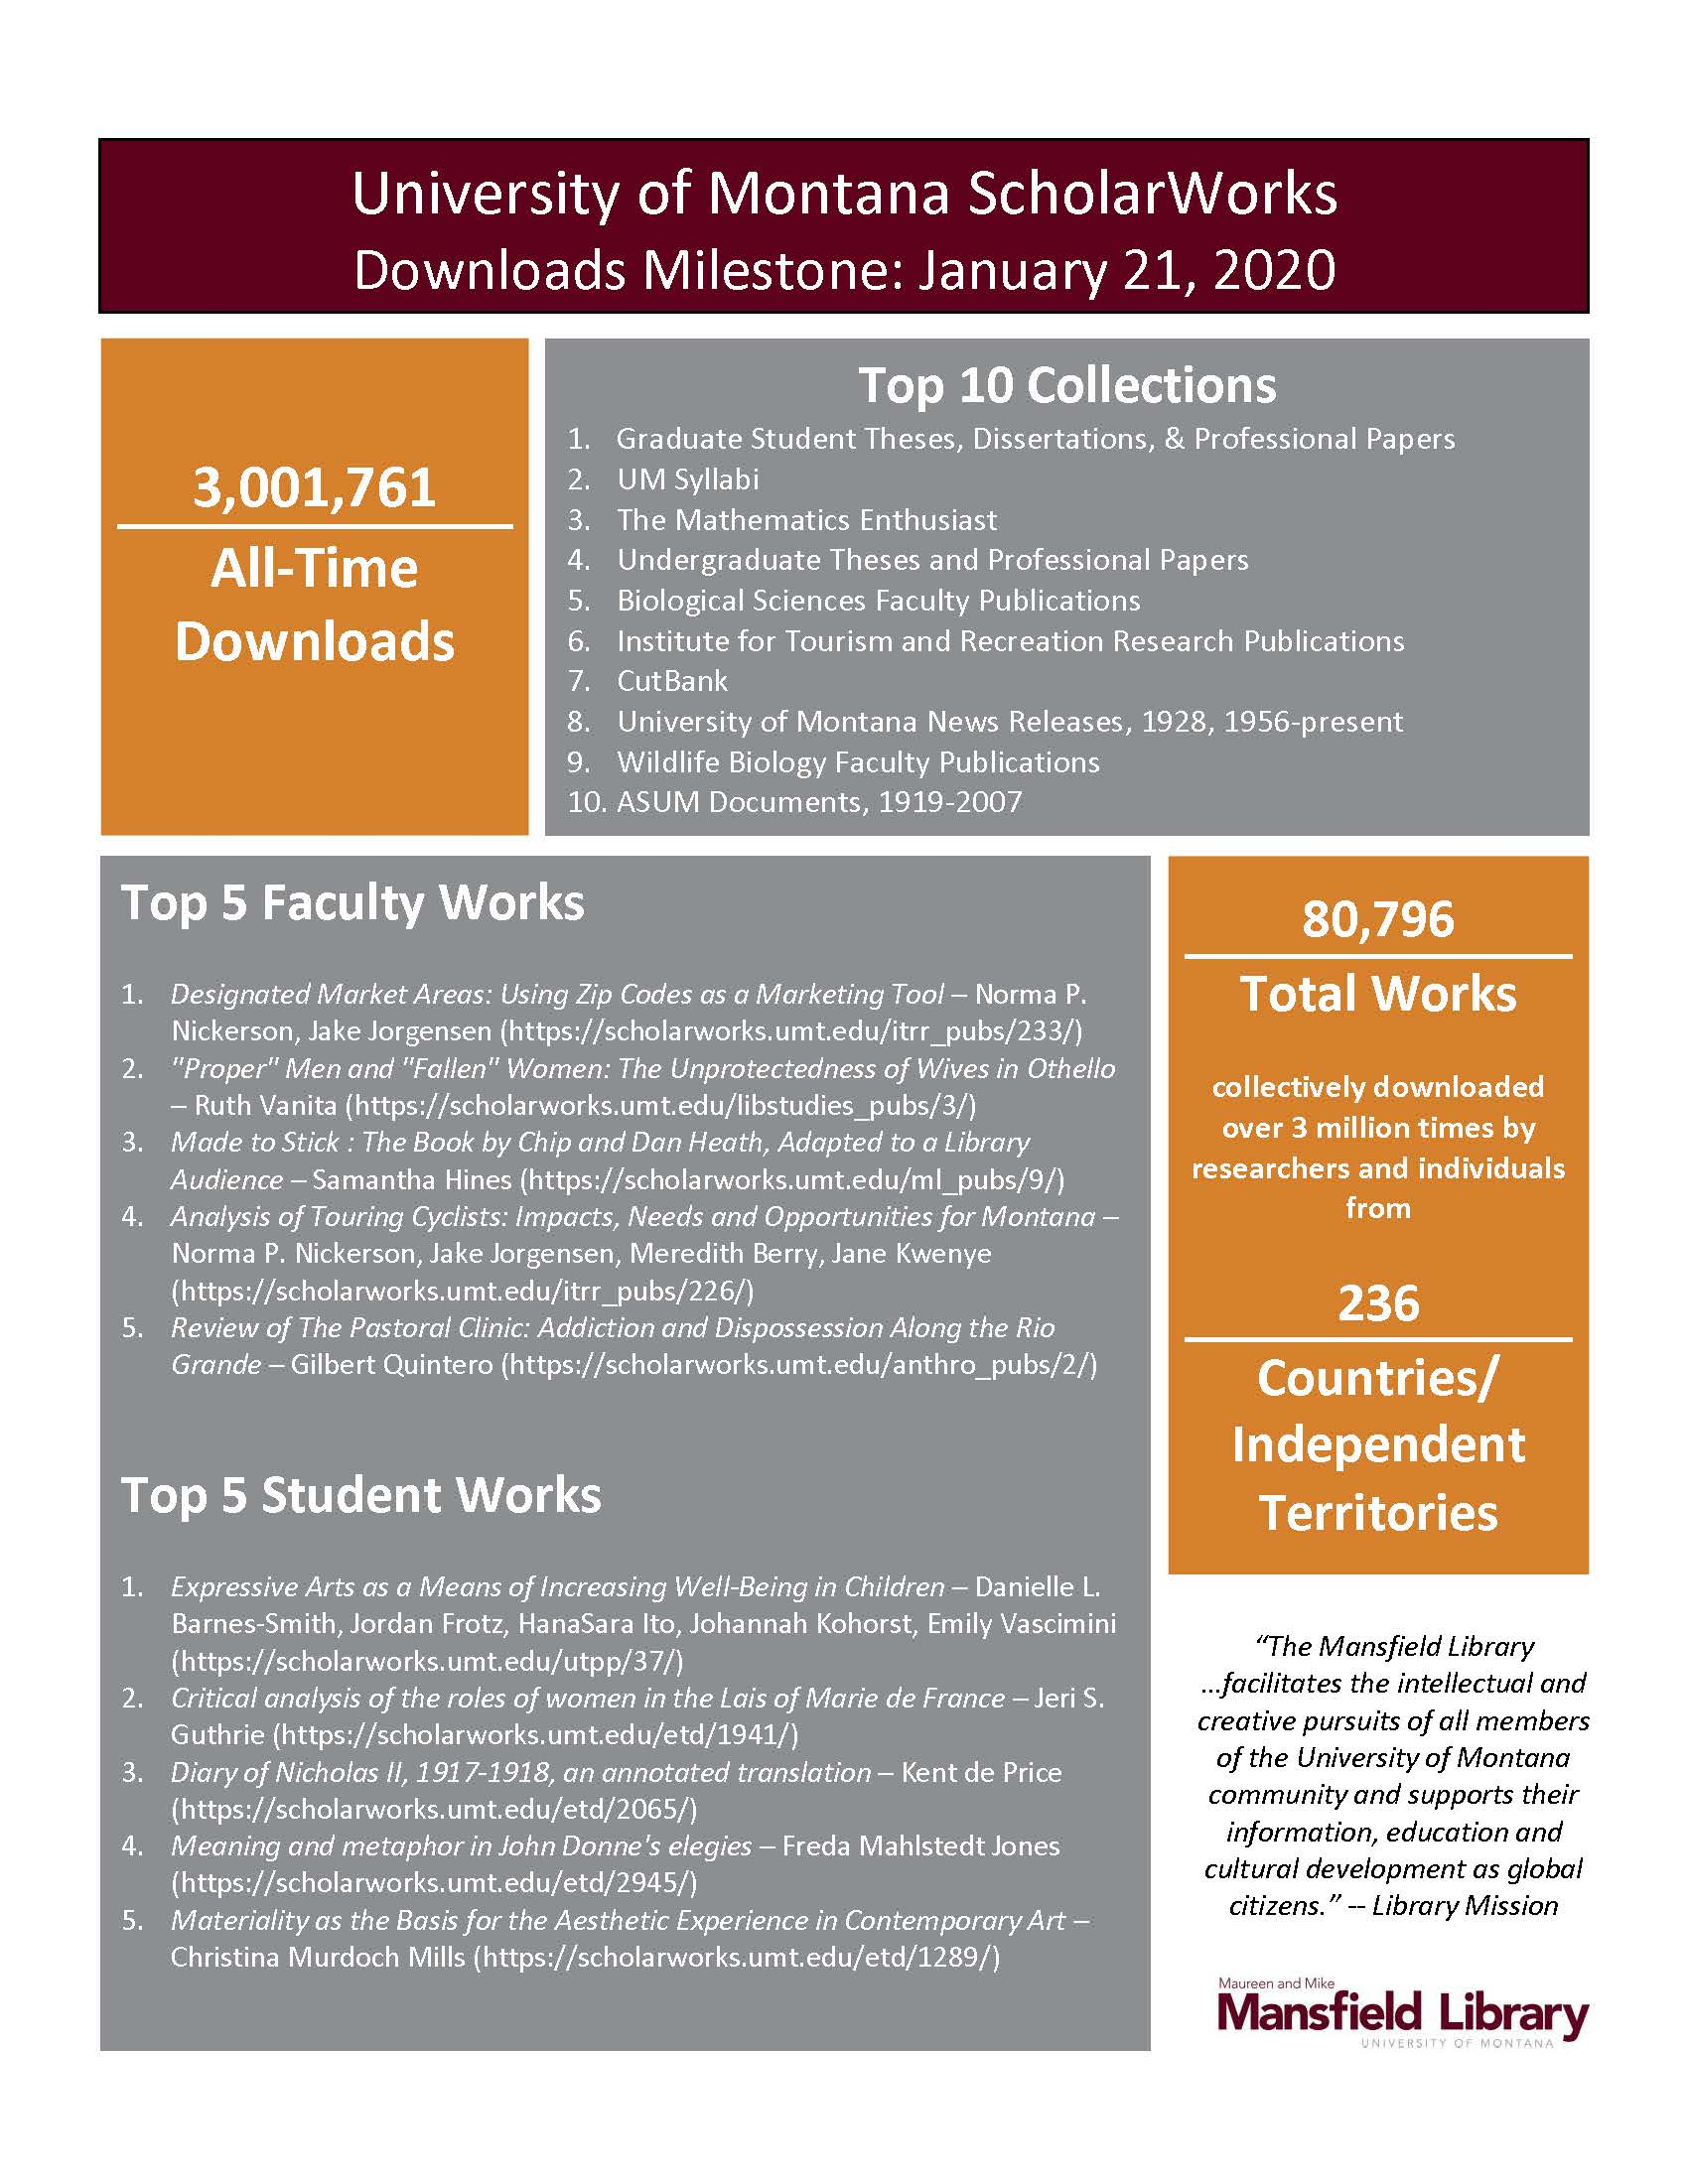 Flyer announcing ScholarWorks' 2 millionth download